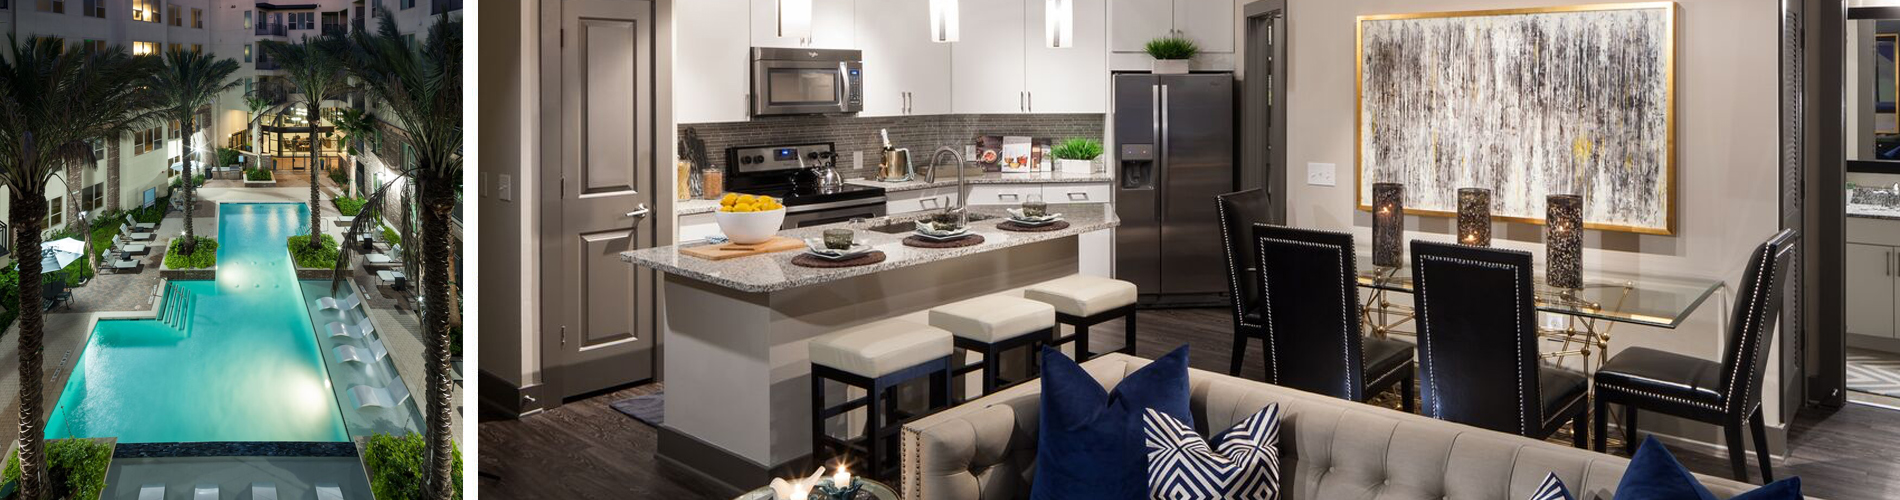 Trinsic Residential Group Aura Memorial Luxury Houston